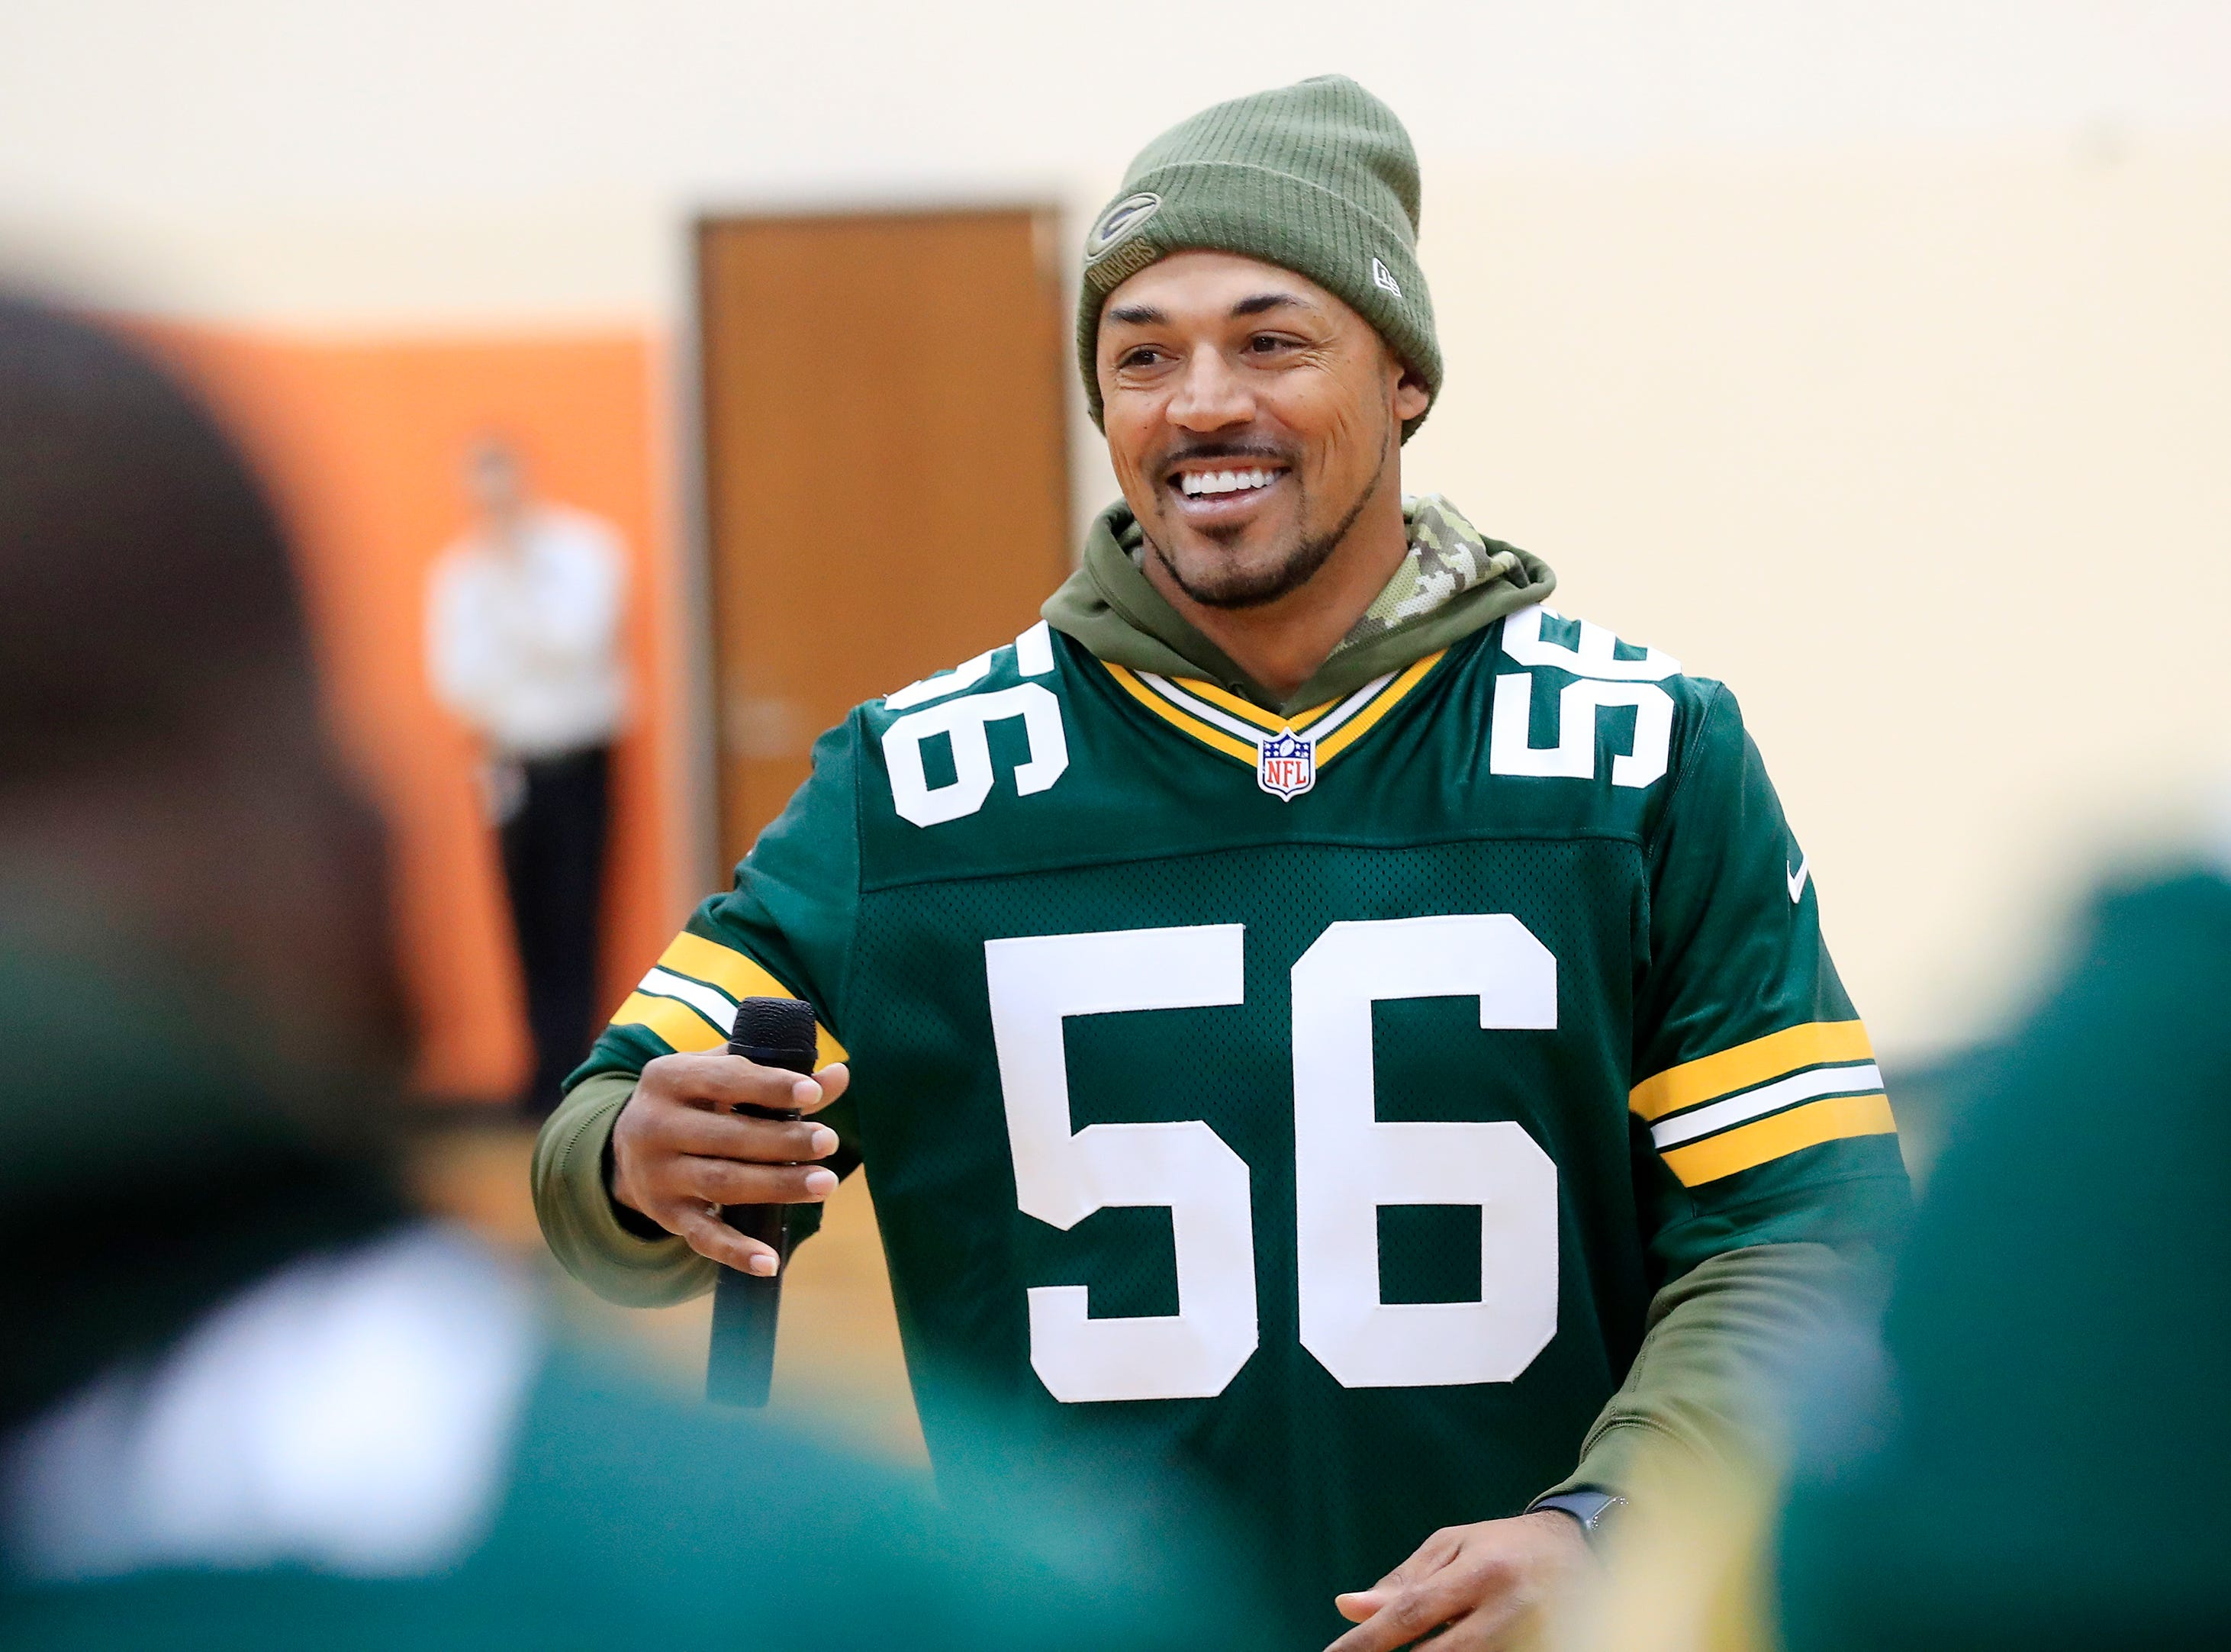 Former Green Bay Packers player Nick Barnett speaks during a stop on the Packers Tailgate Tour at Clintonville High School on Tuesday, April 9, 2019 in Clintonville, Wis.